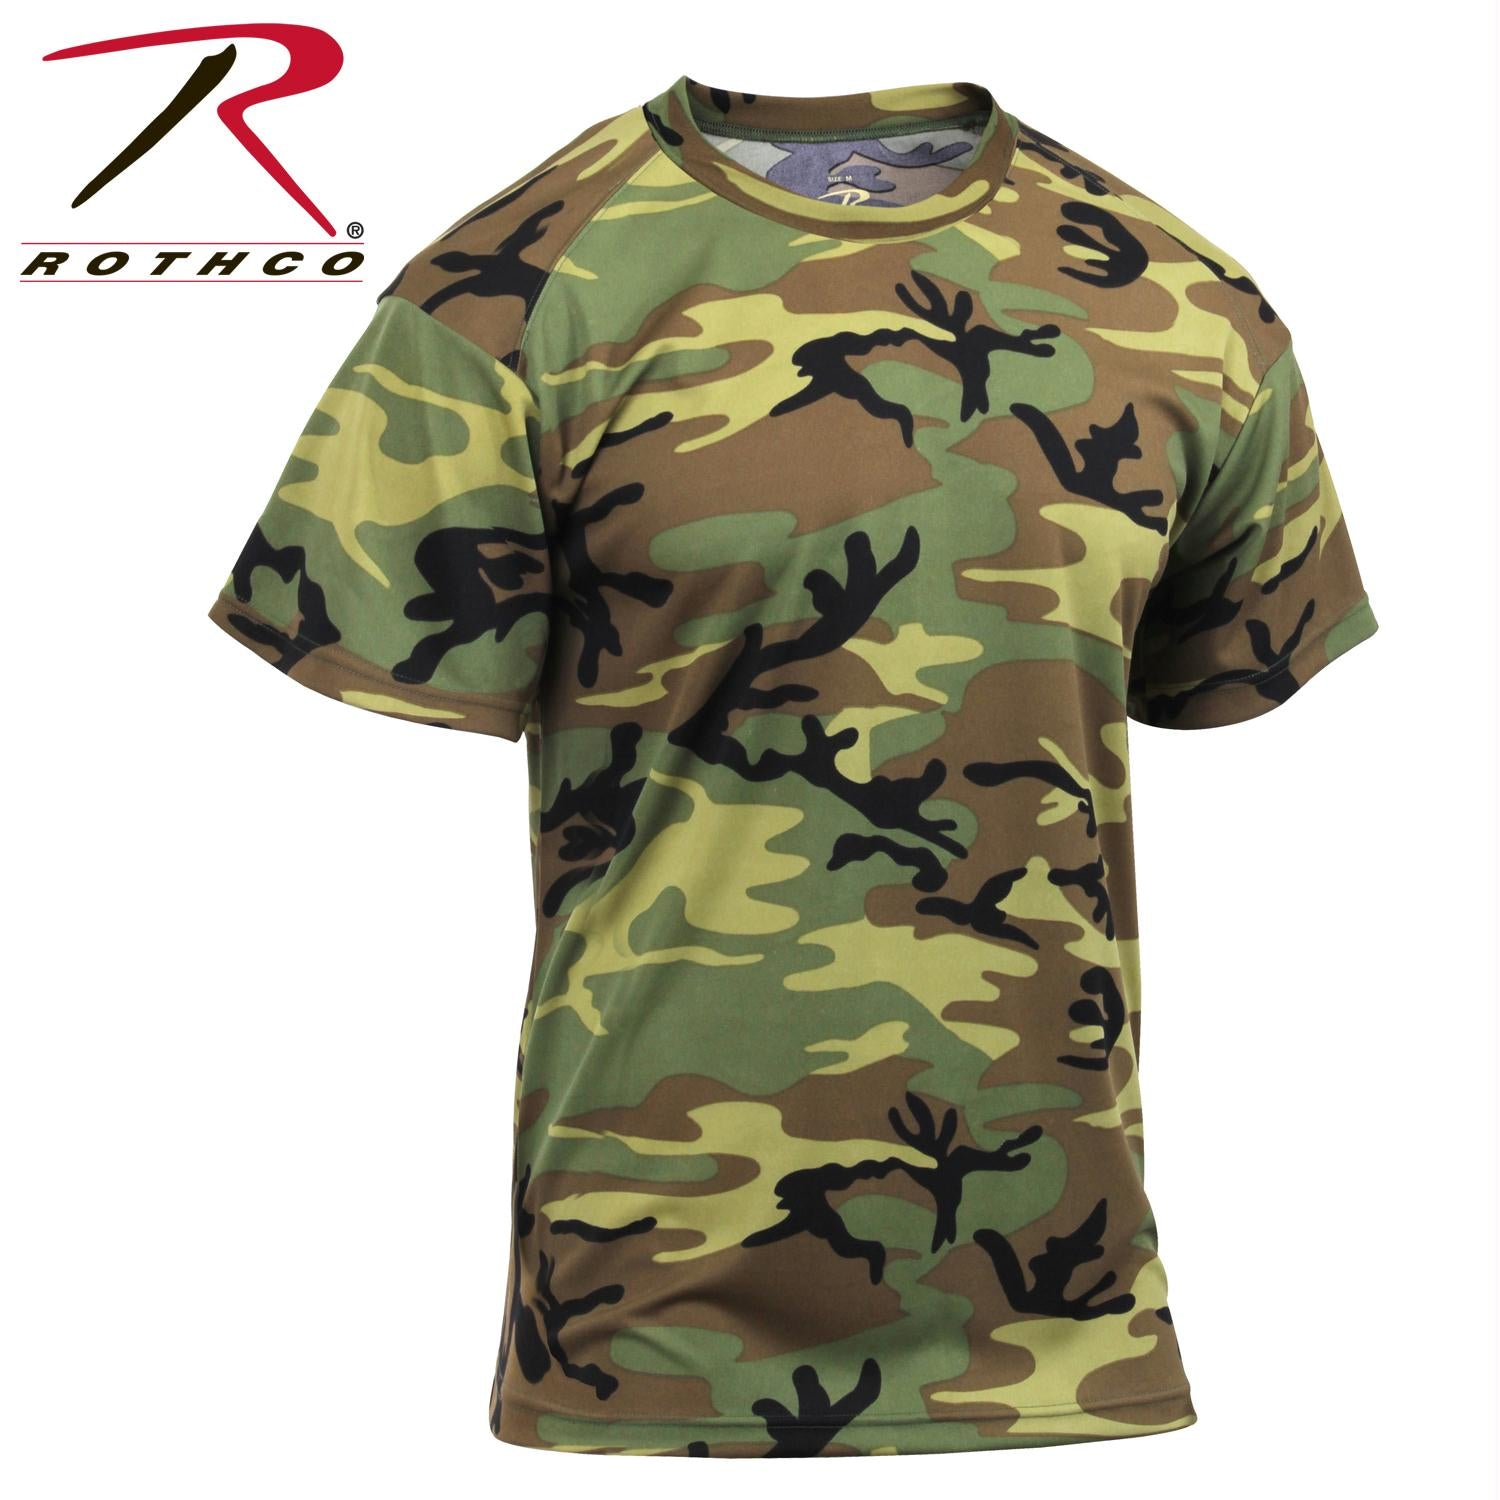 Rothco Polyester Performance T-Shirt - Woodland Camo / L